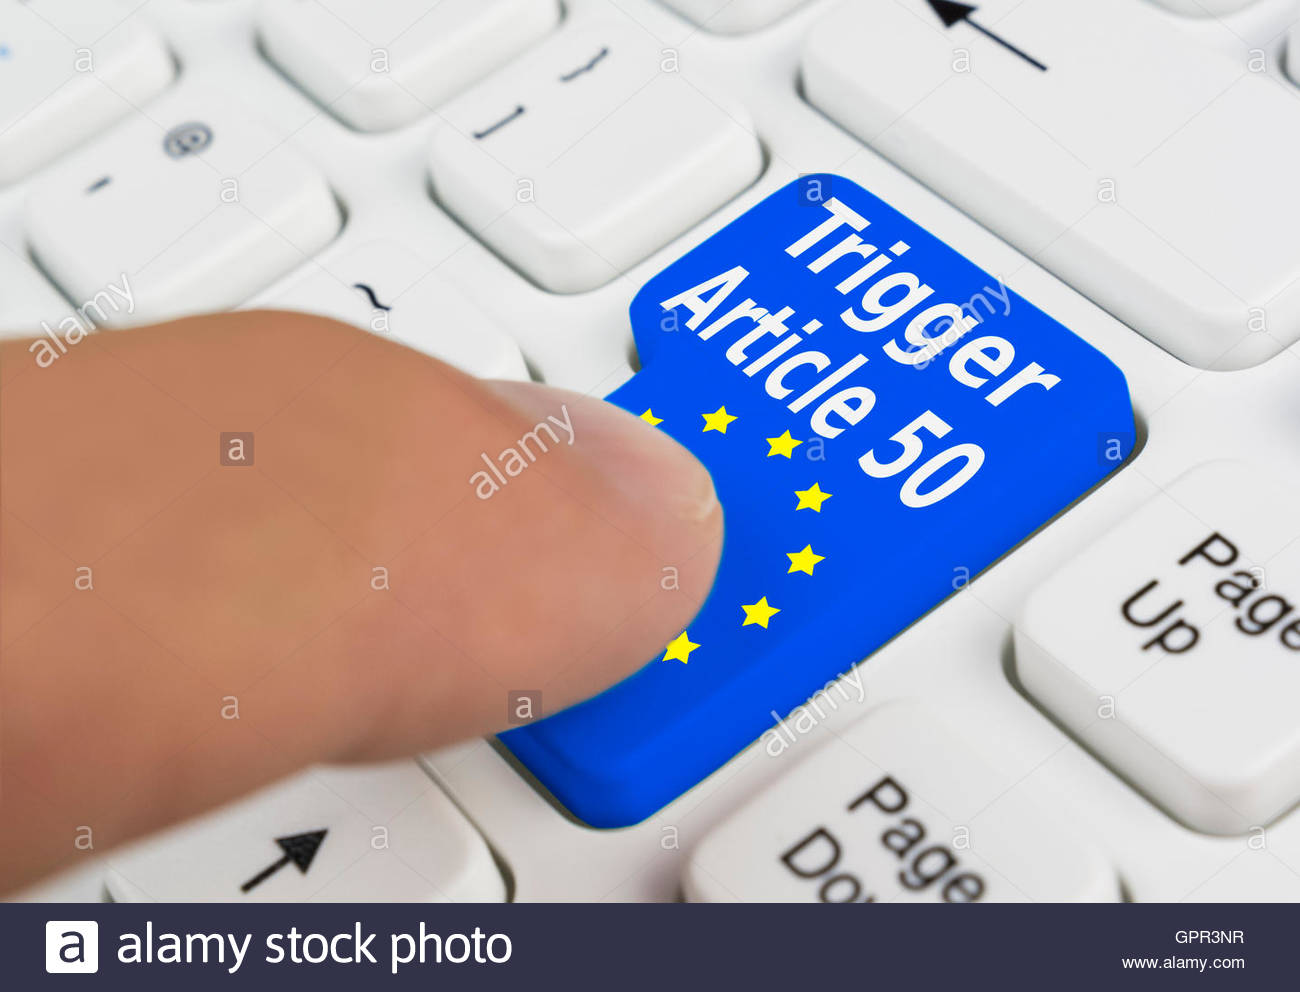 Brexit. Article 50 trigger button on a computer keyboard, to invoke article 50 of the European Union Lisbon Treaty. - Stock Image